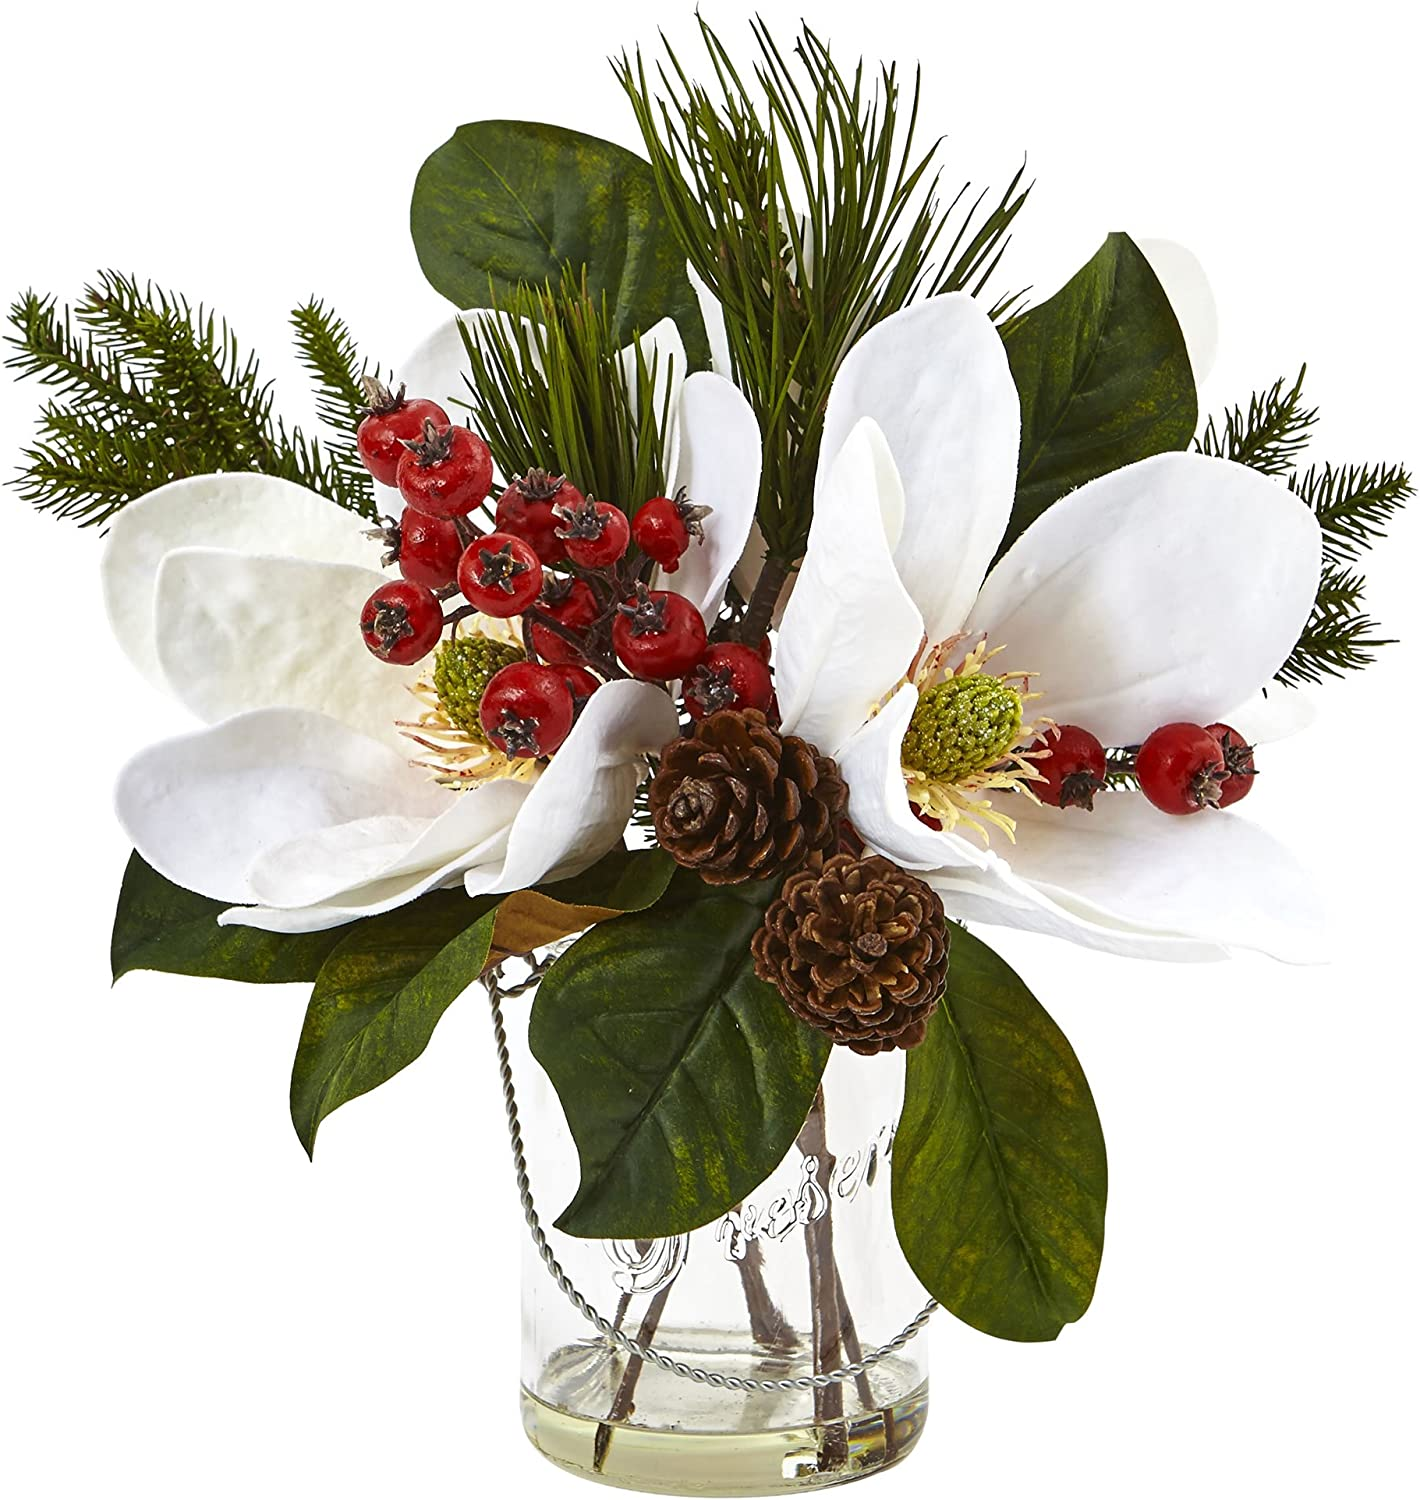 Amazon Com Nearly Natural 4548 Magnolia Pine And Berry Holiday Arrangement In Glass Vase Home Kitchen